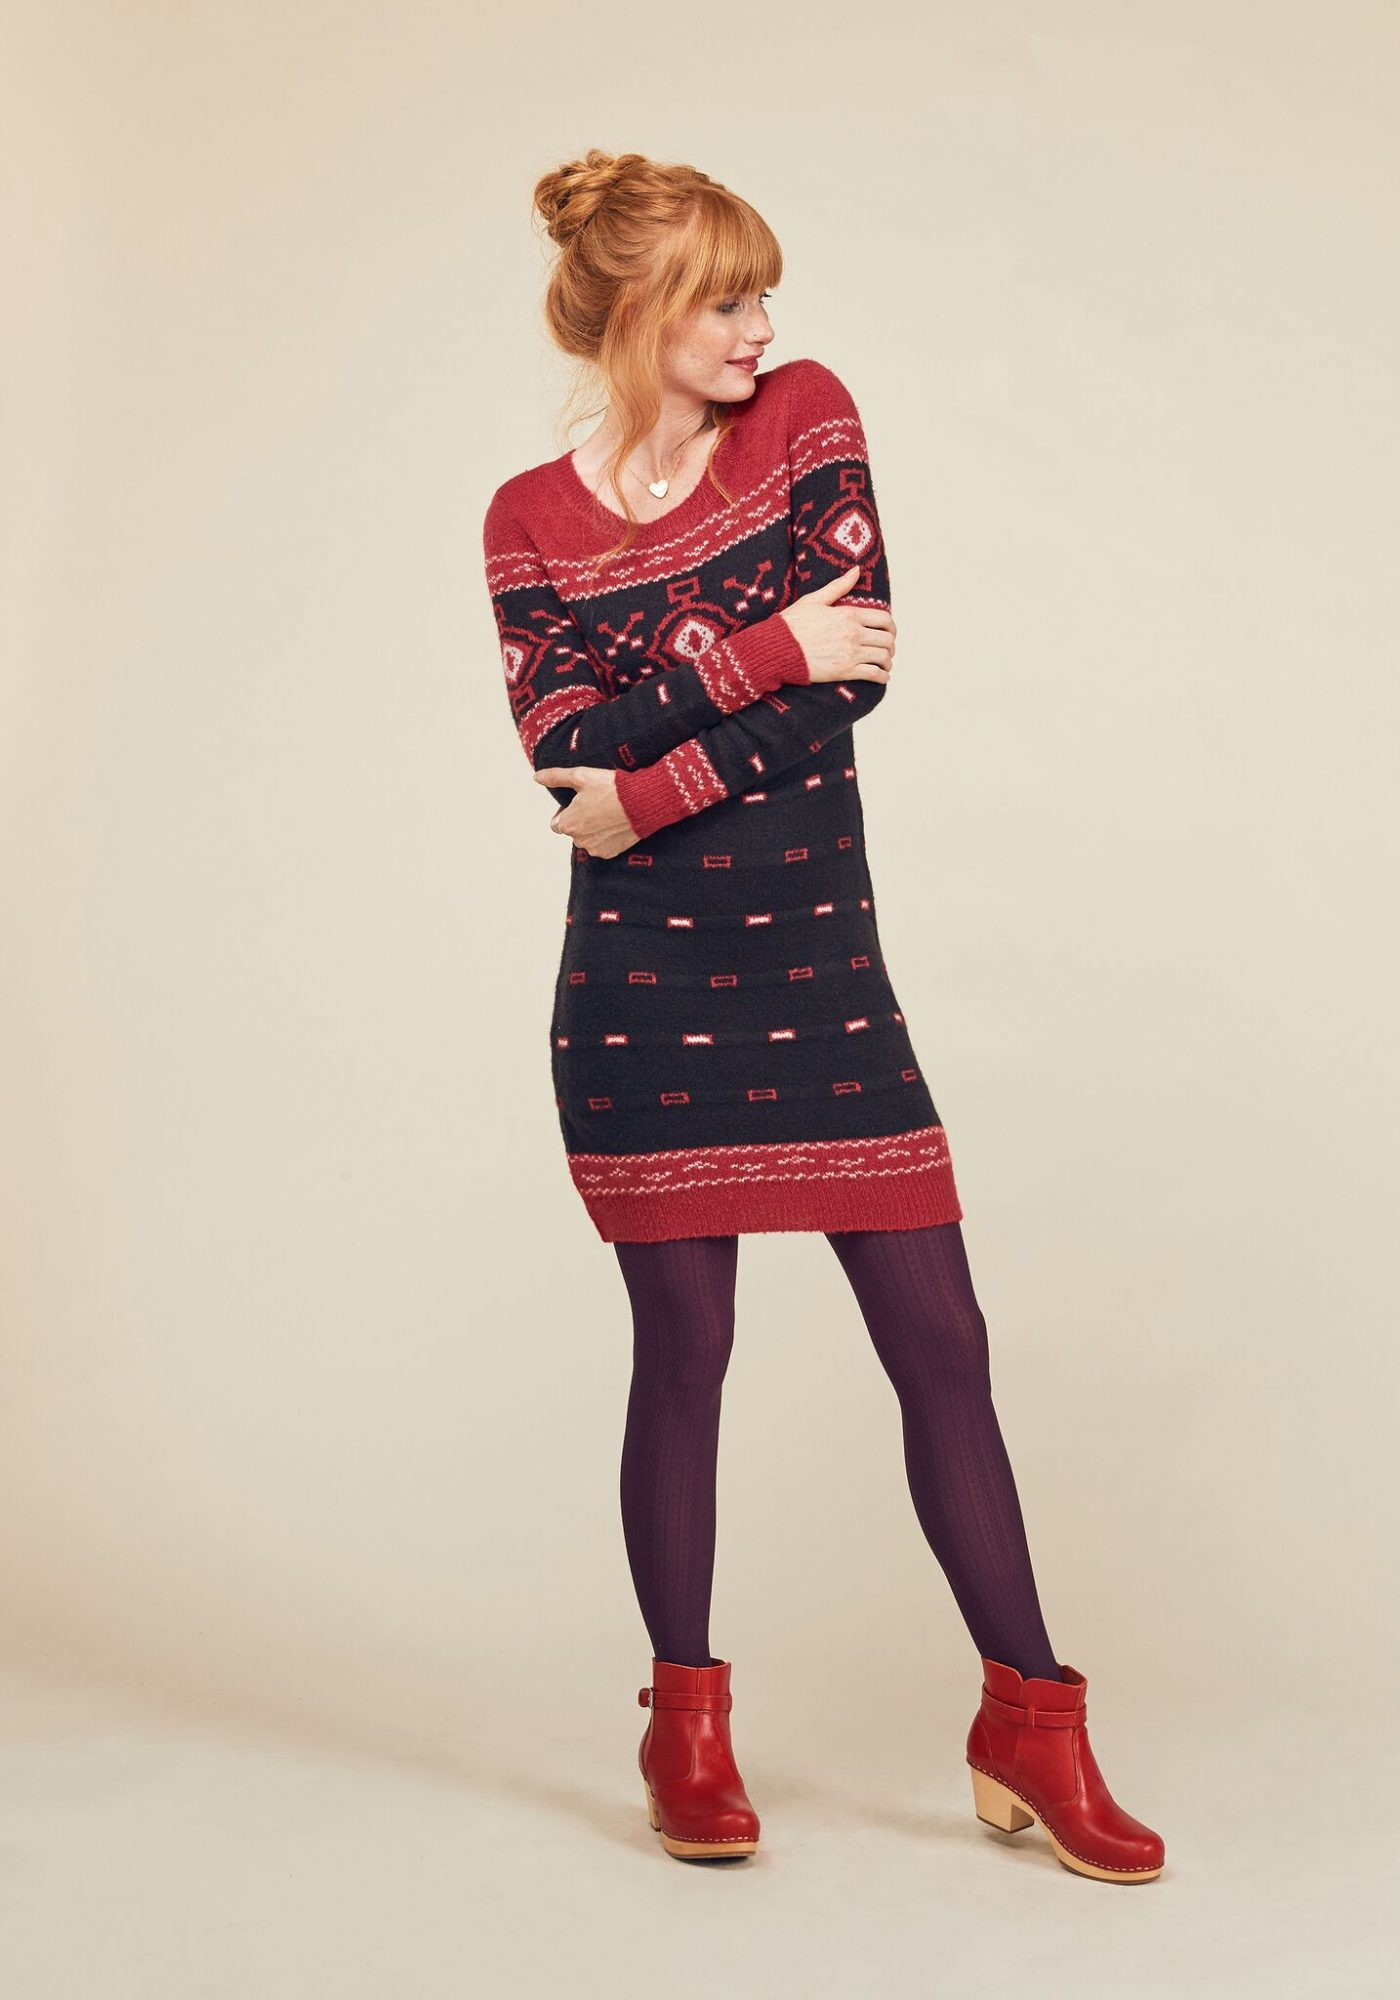 picture-of-modcloth-sweaterdress-photo.jpg